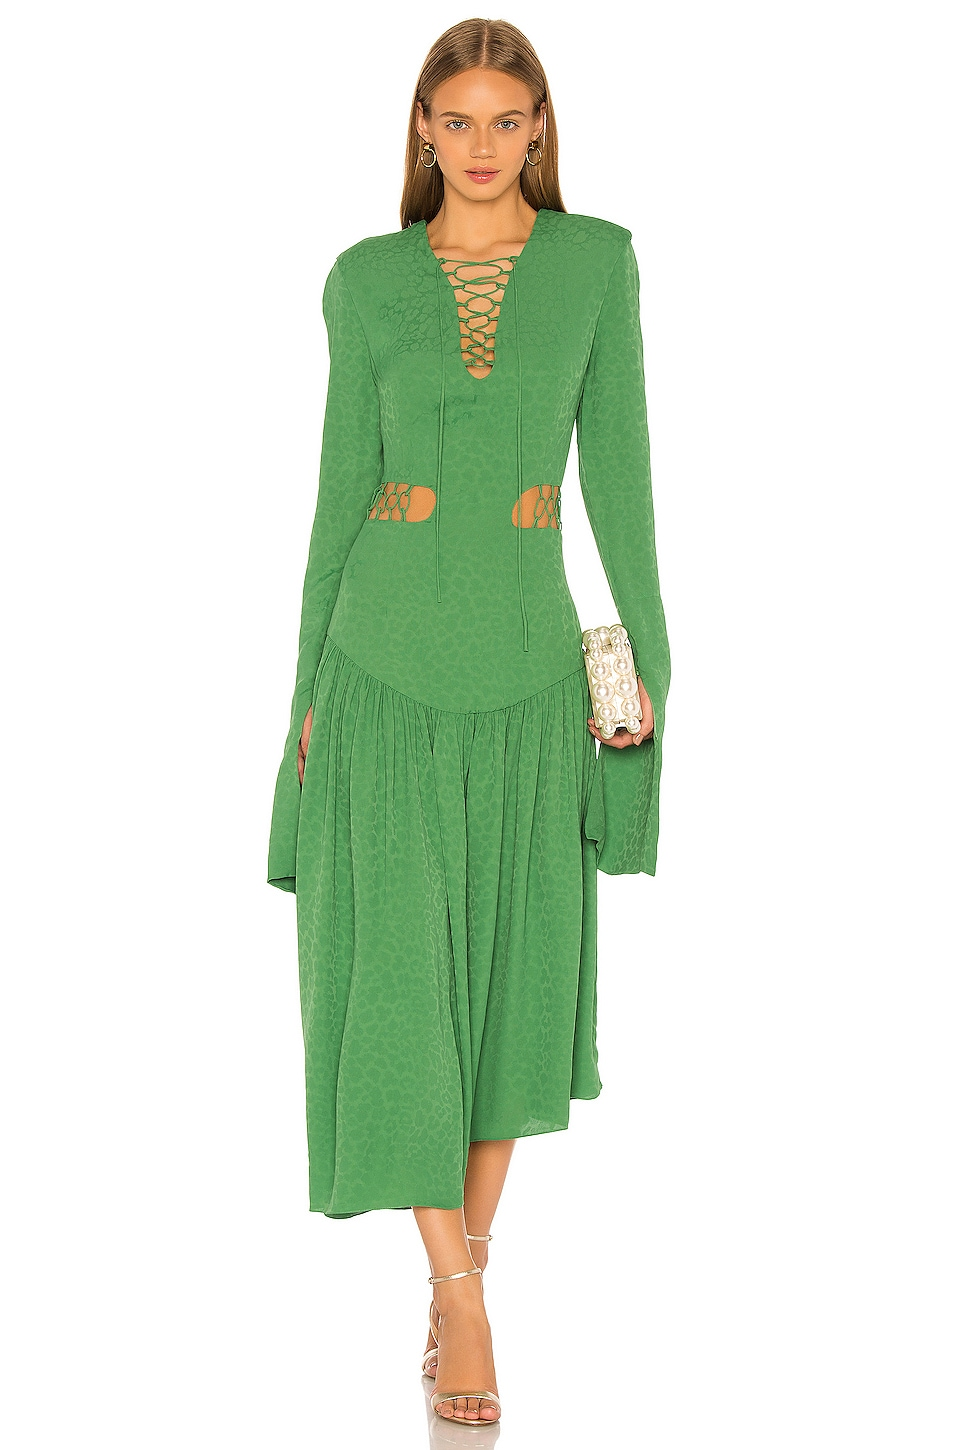 MATERIEL Lace Up Dress in Green